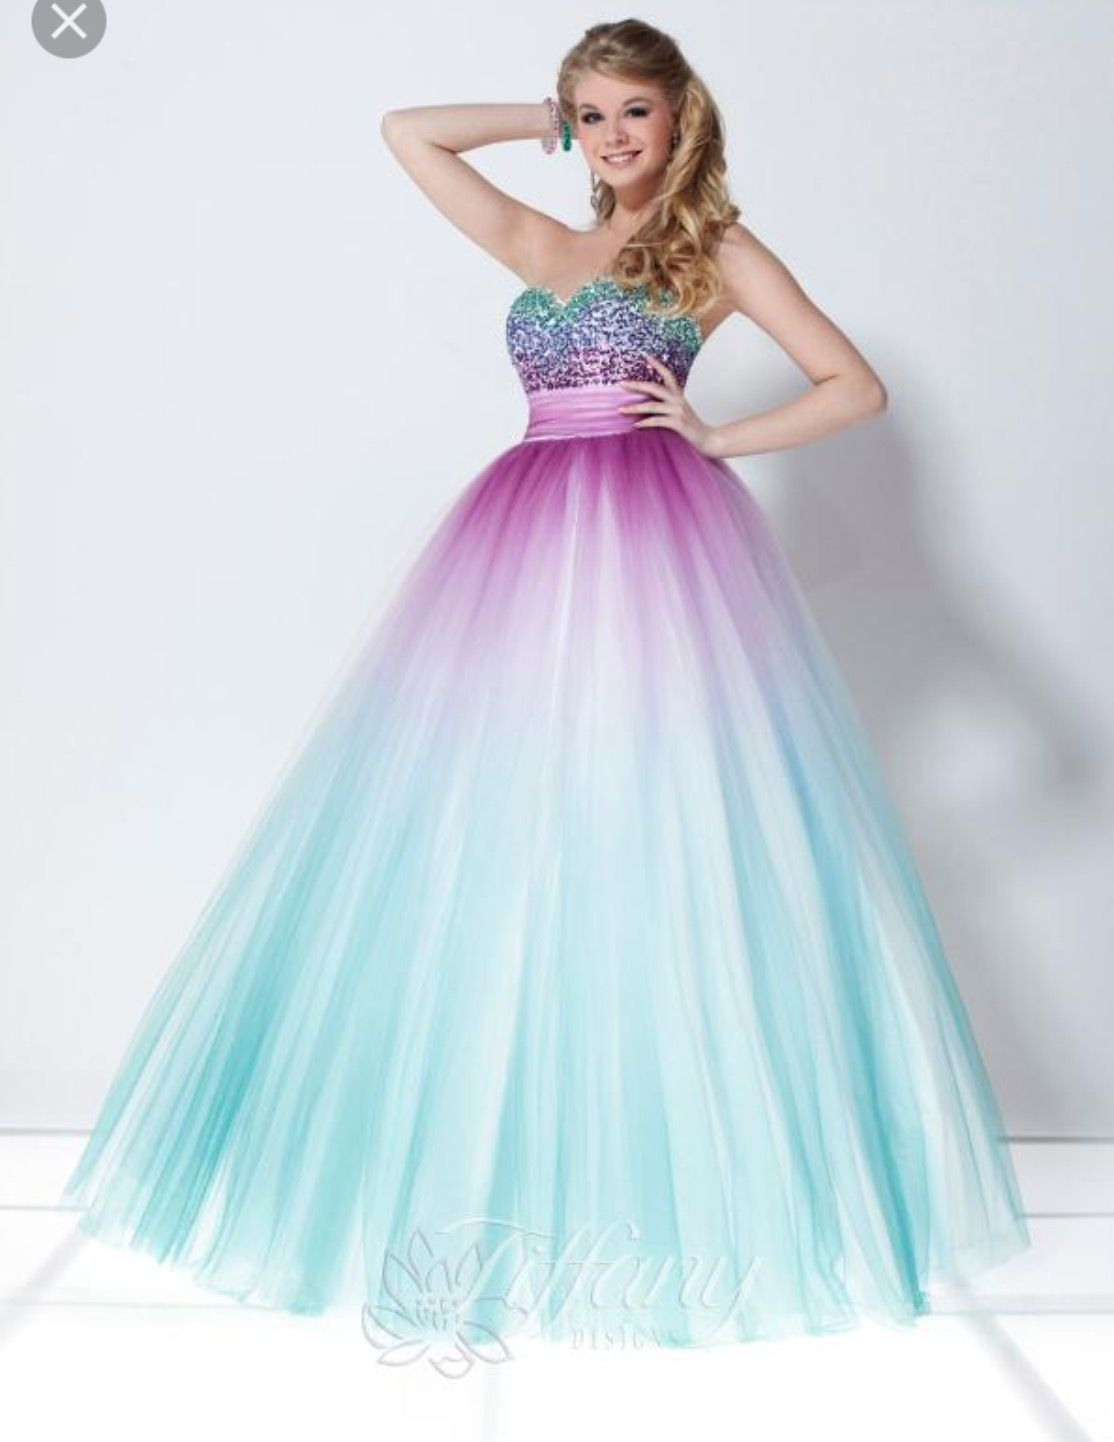 Pin by desiree harvey on dresses pinterest prom